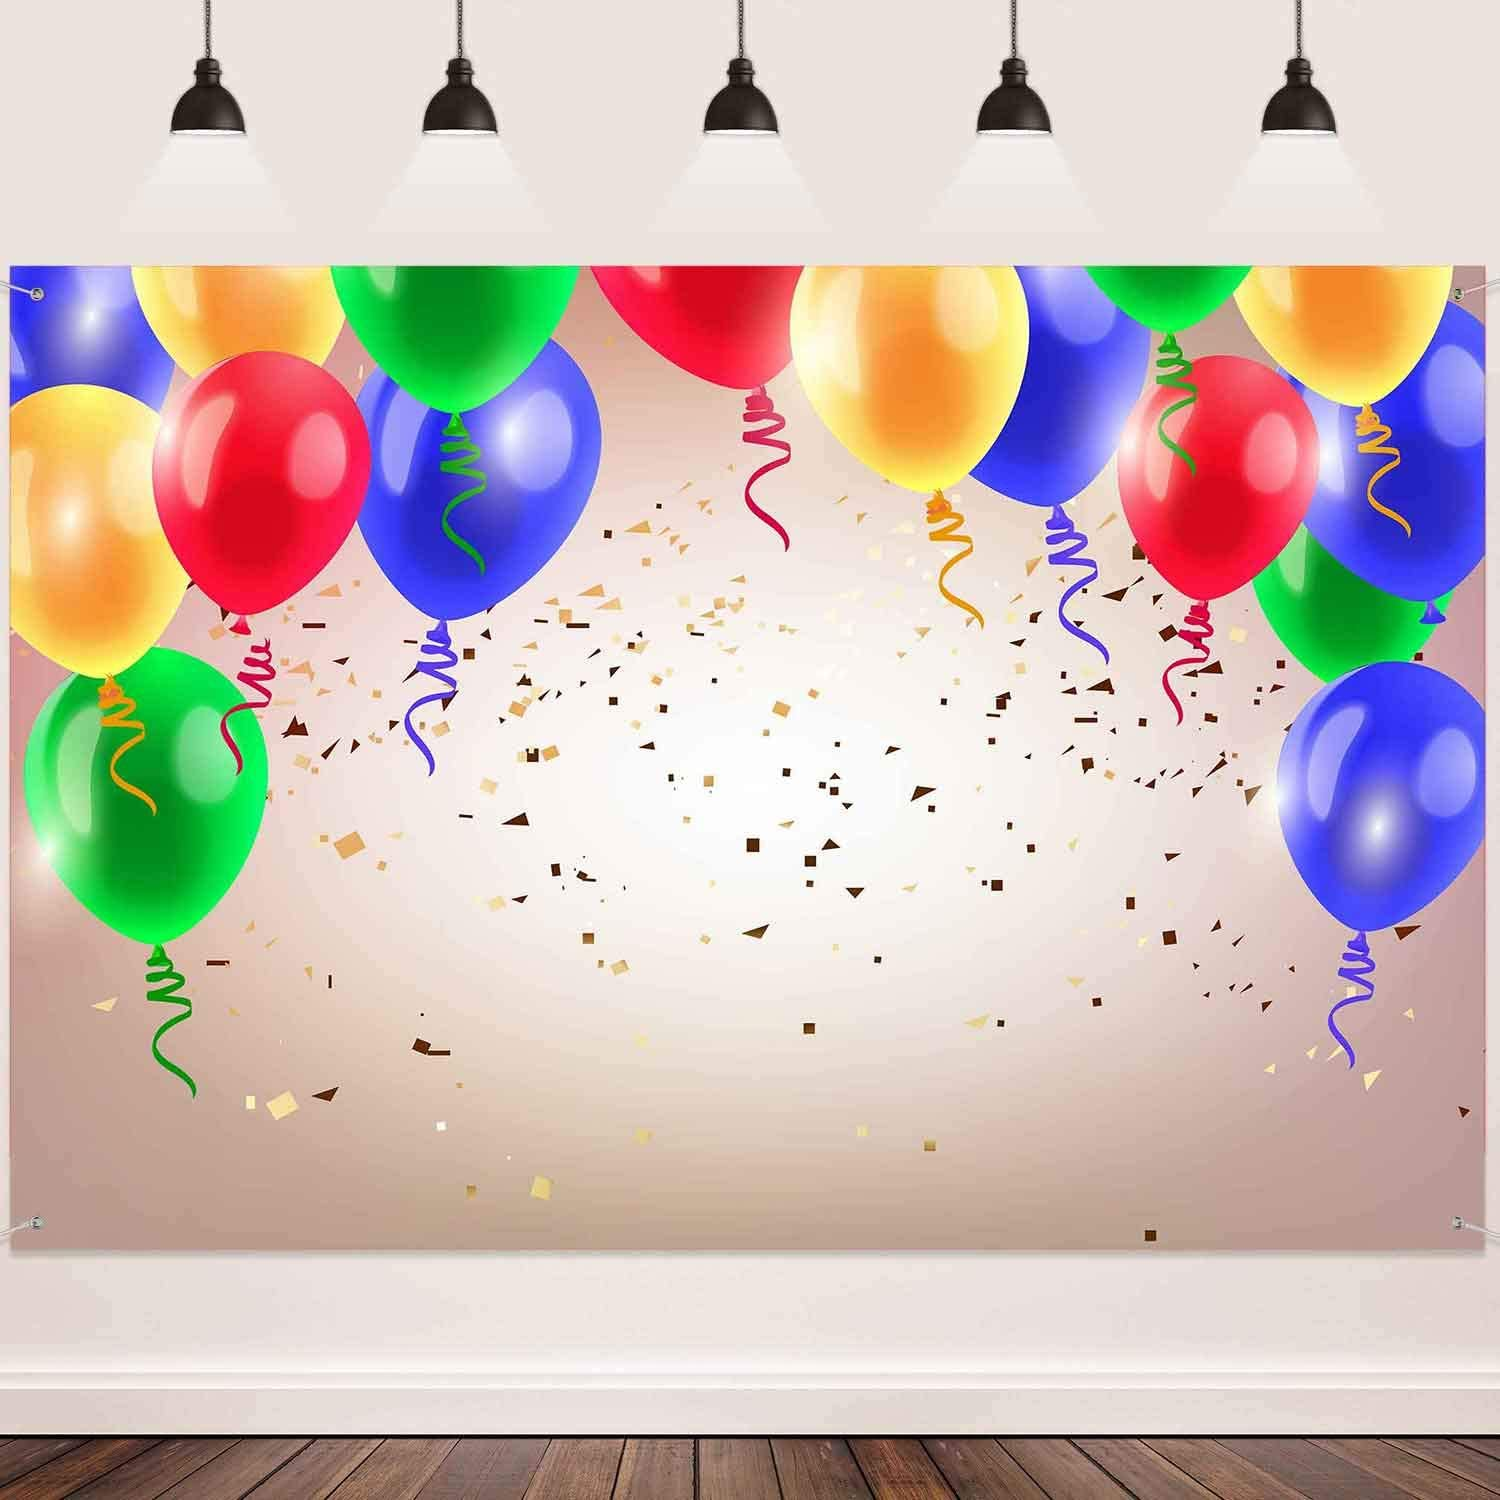 15x10ft Colorful Balloons Birthday Backdrops Photography Backdrop Decor Photos Background Props DSFU134